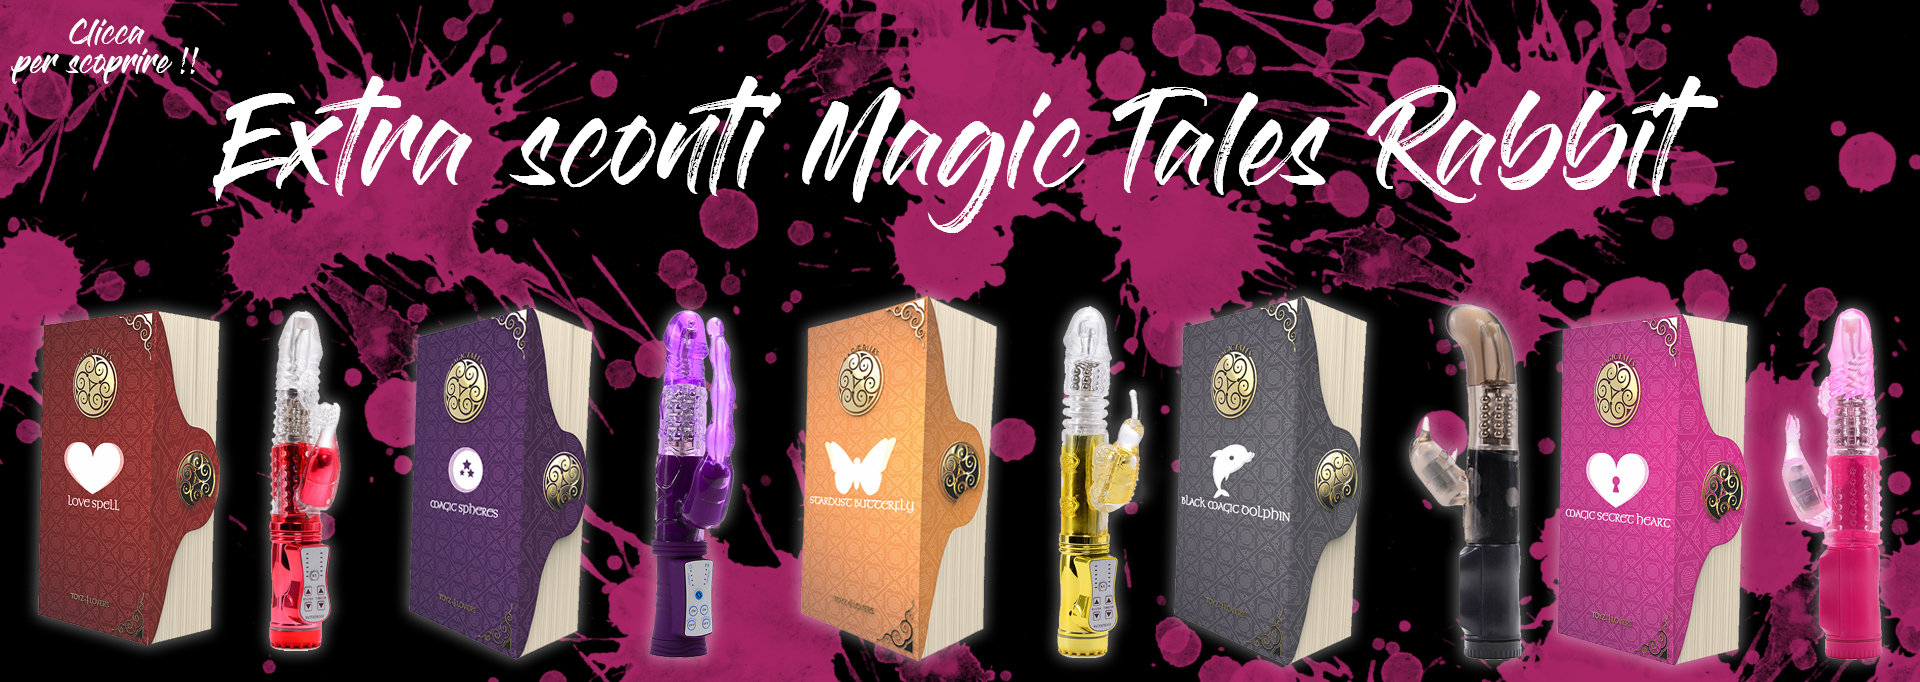 sconti magic tales